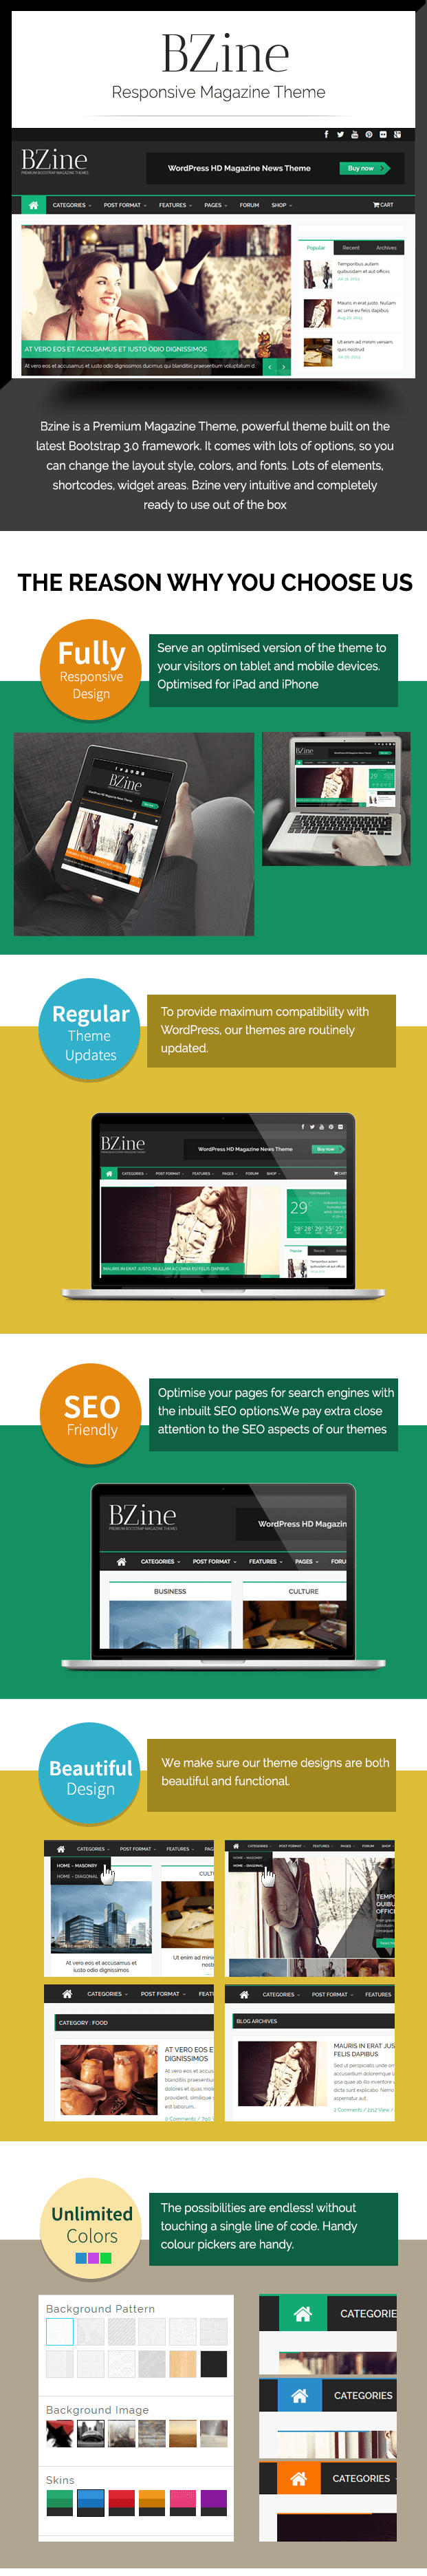 bzine magazine wordpress theme